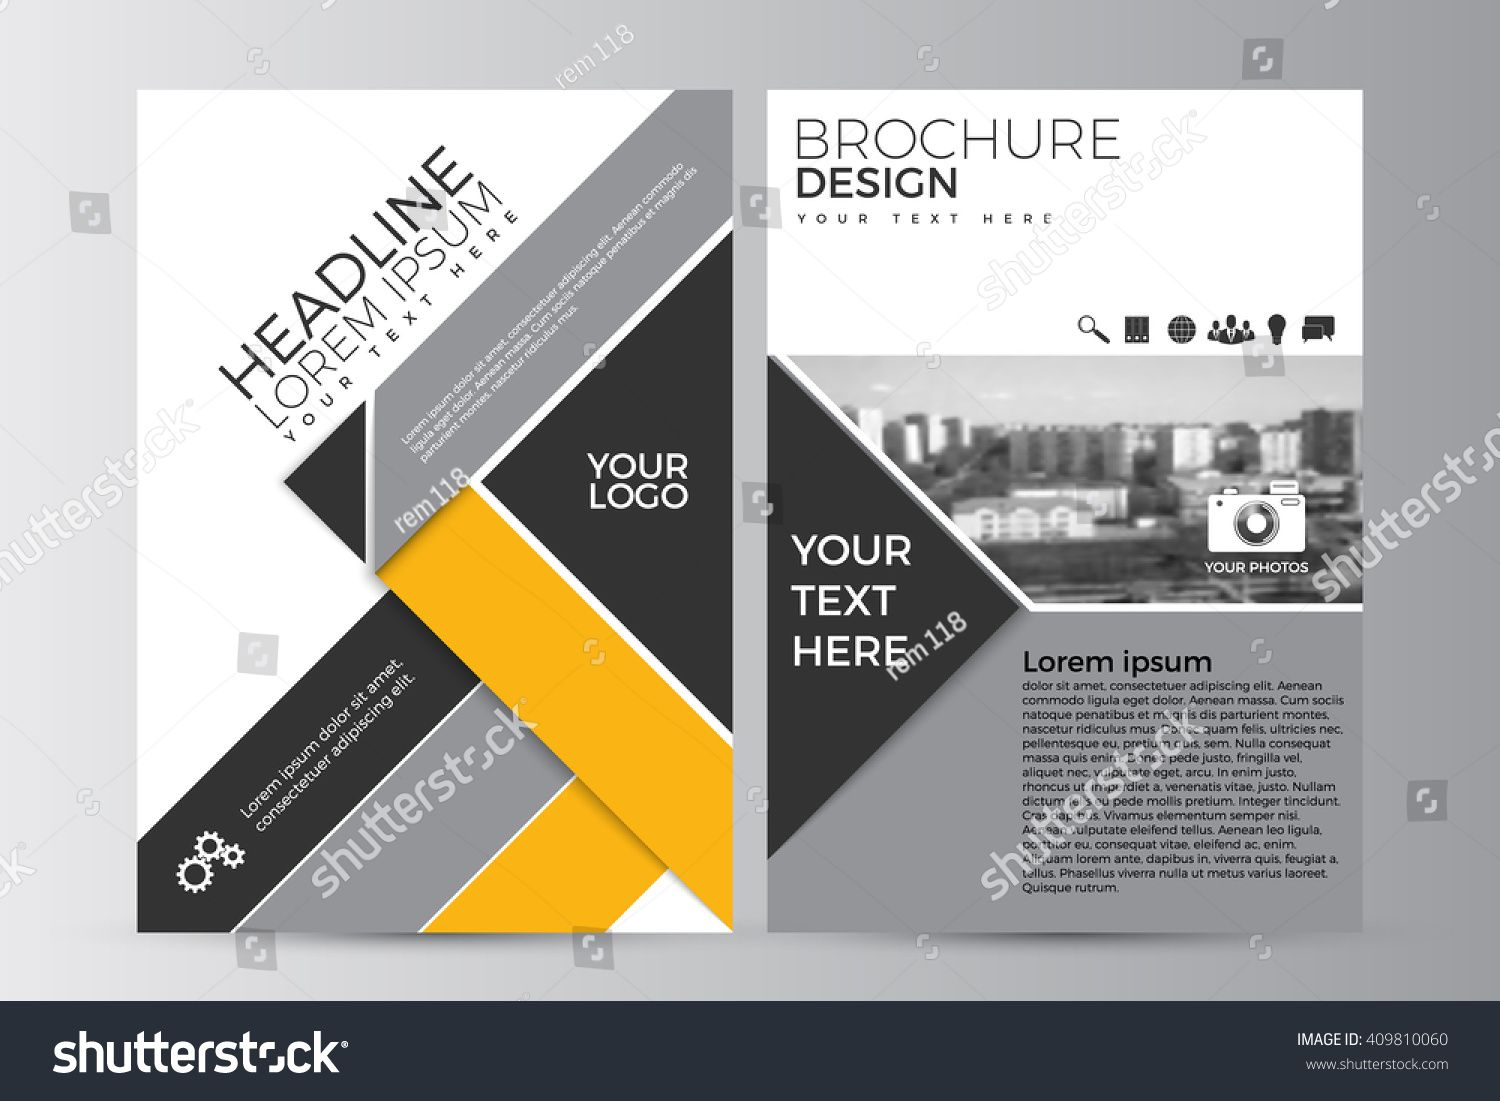 Abstract Flyer Design Background Brochure Template Can Be Used